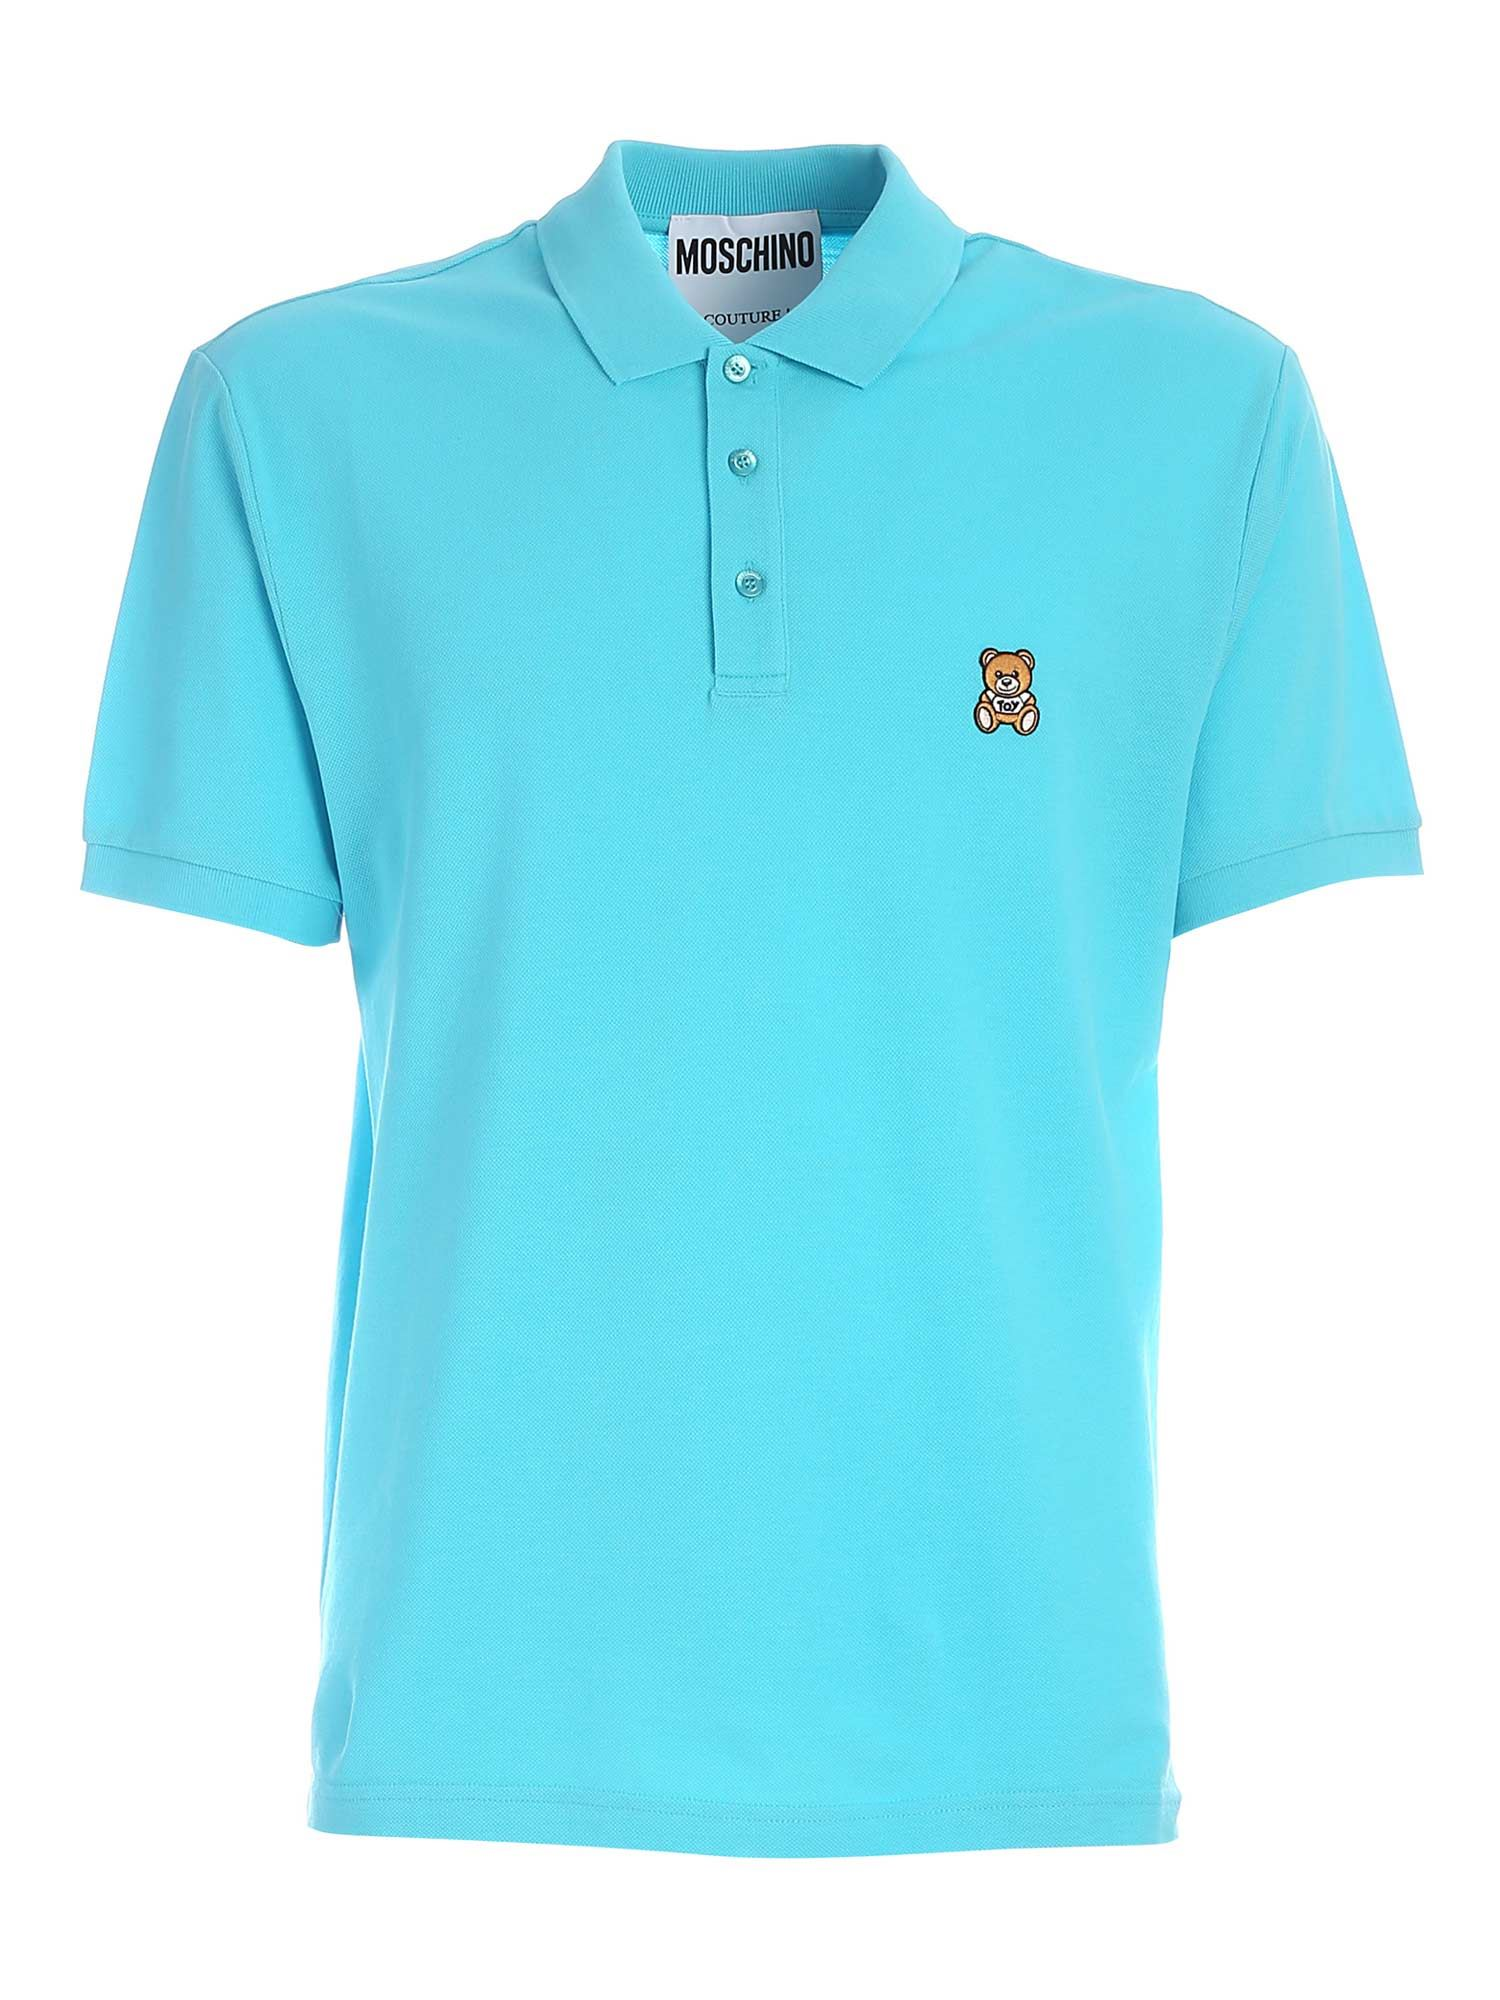 Moschino TEDDY BEAR PATCH POLO SHIRT IN LIGHT BLUE